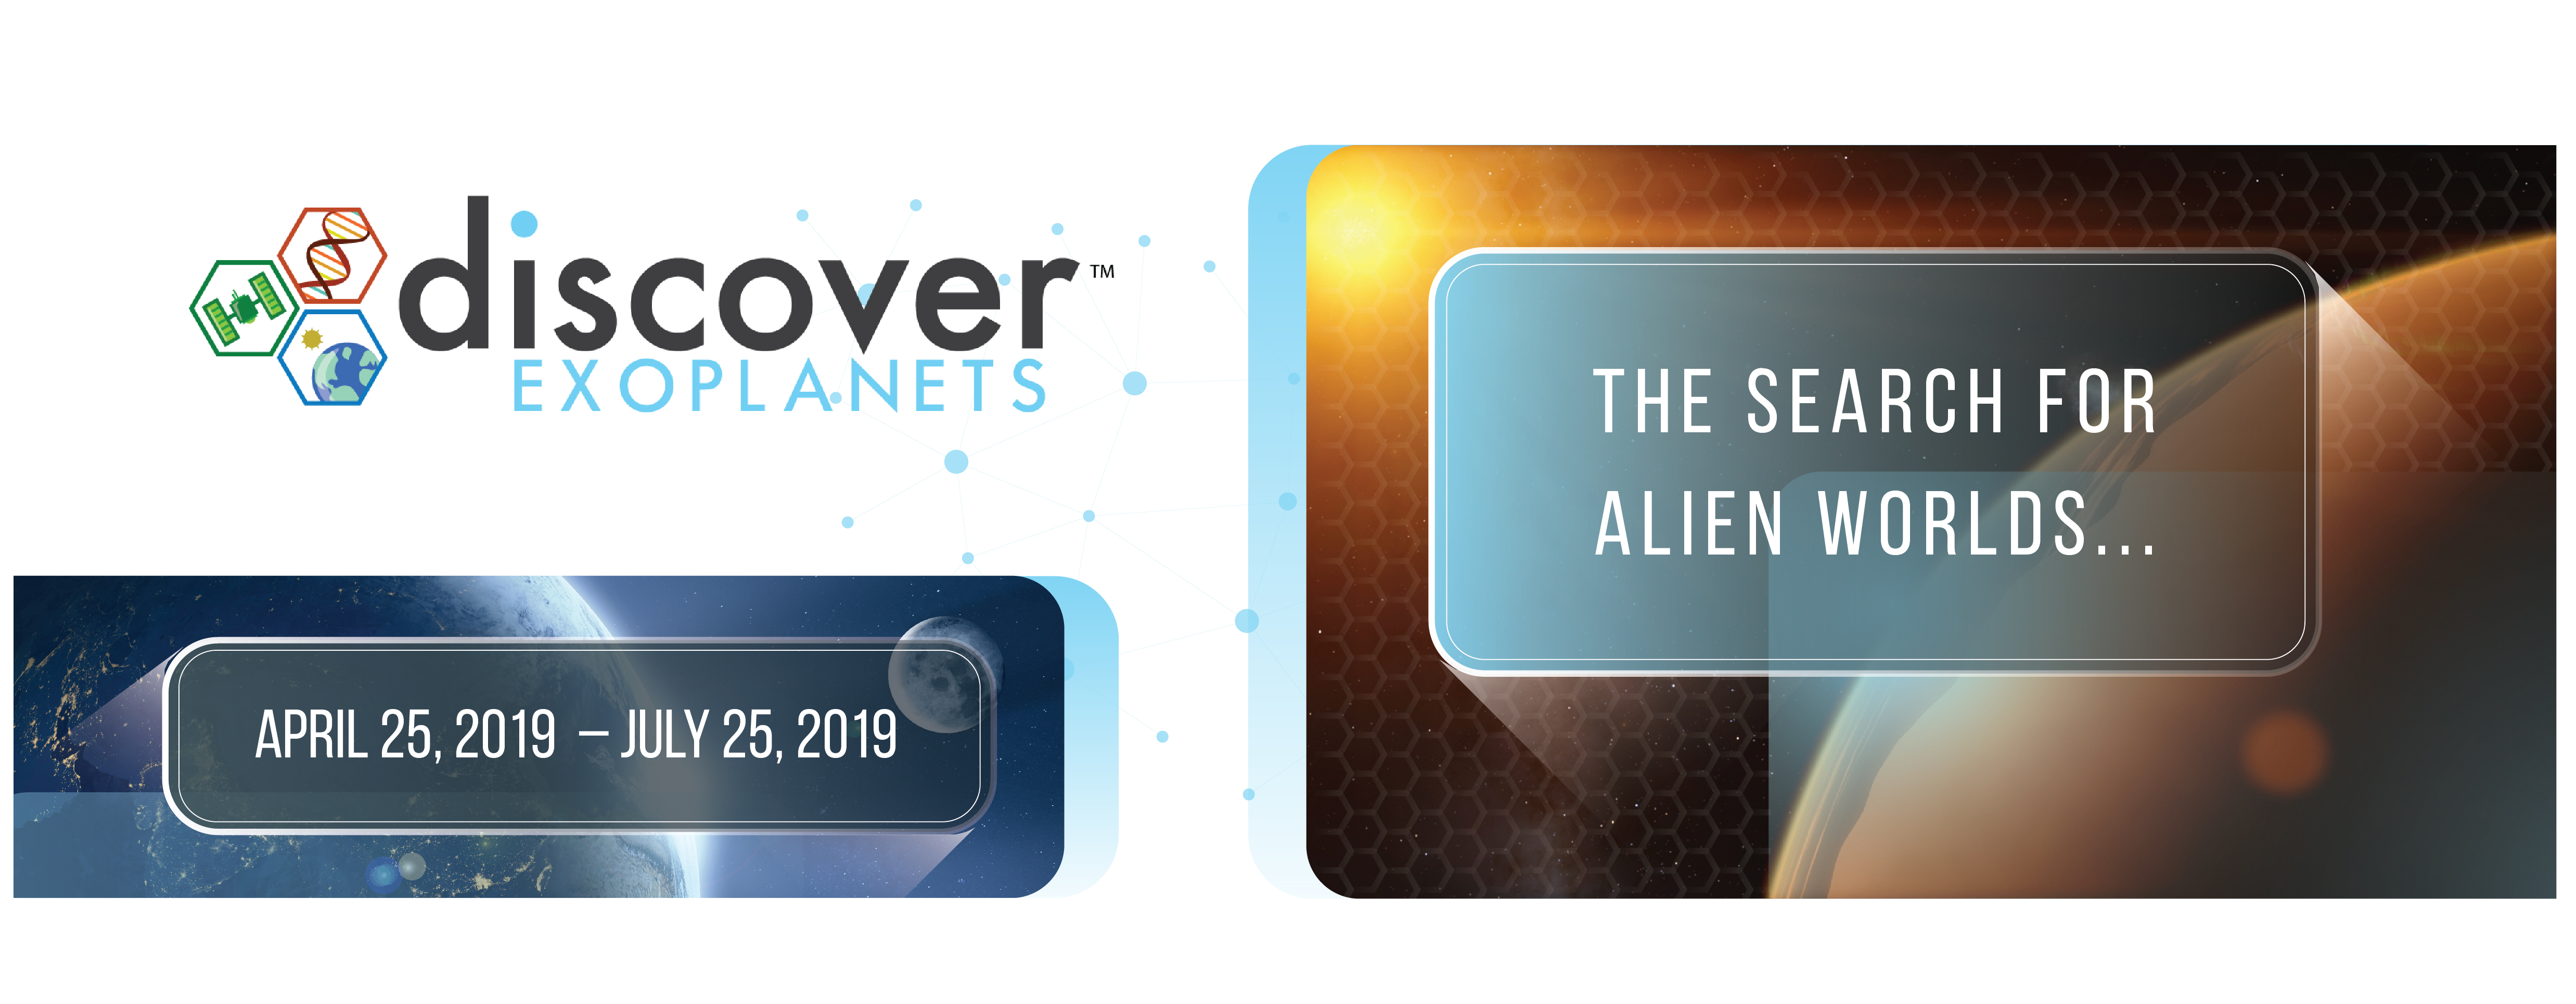 Discover Exoplanets The Search for Alien Worlds, April 25, 2019 to July 25, 2019